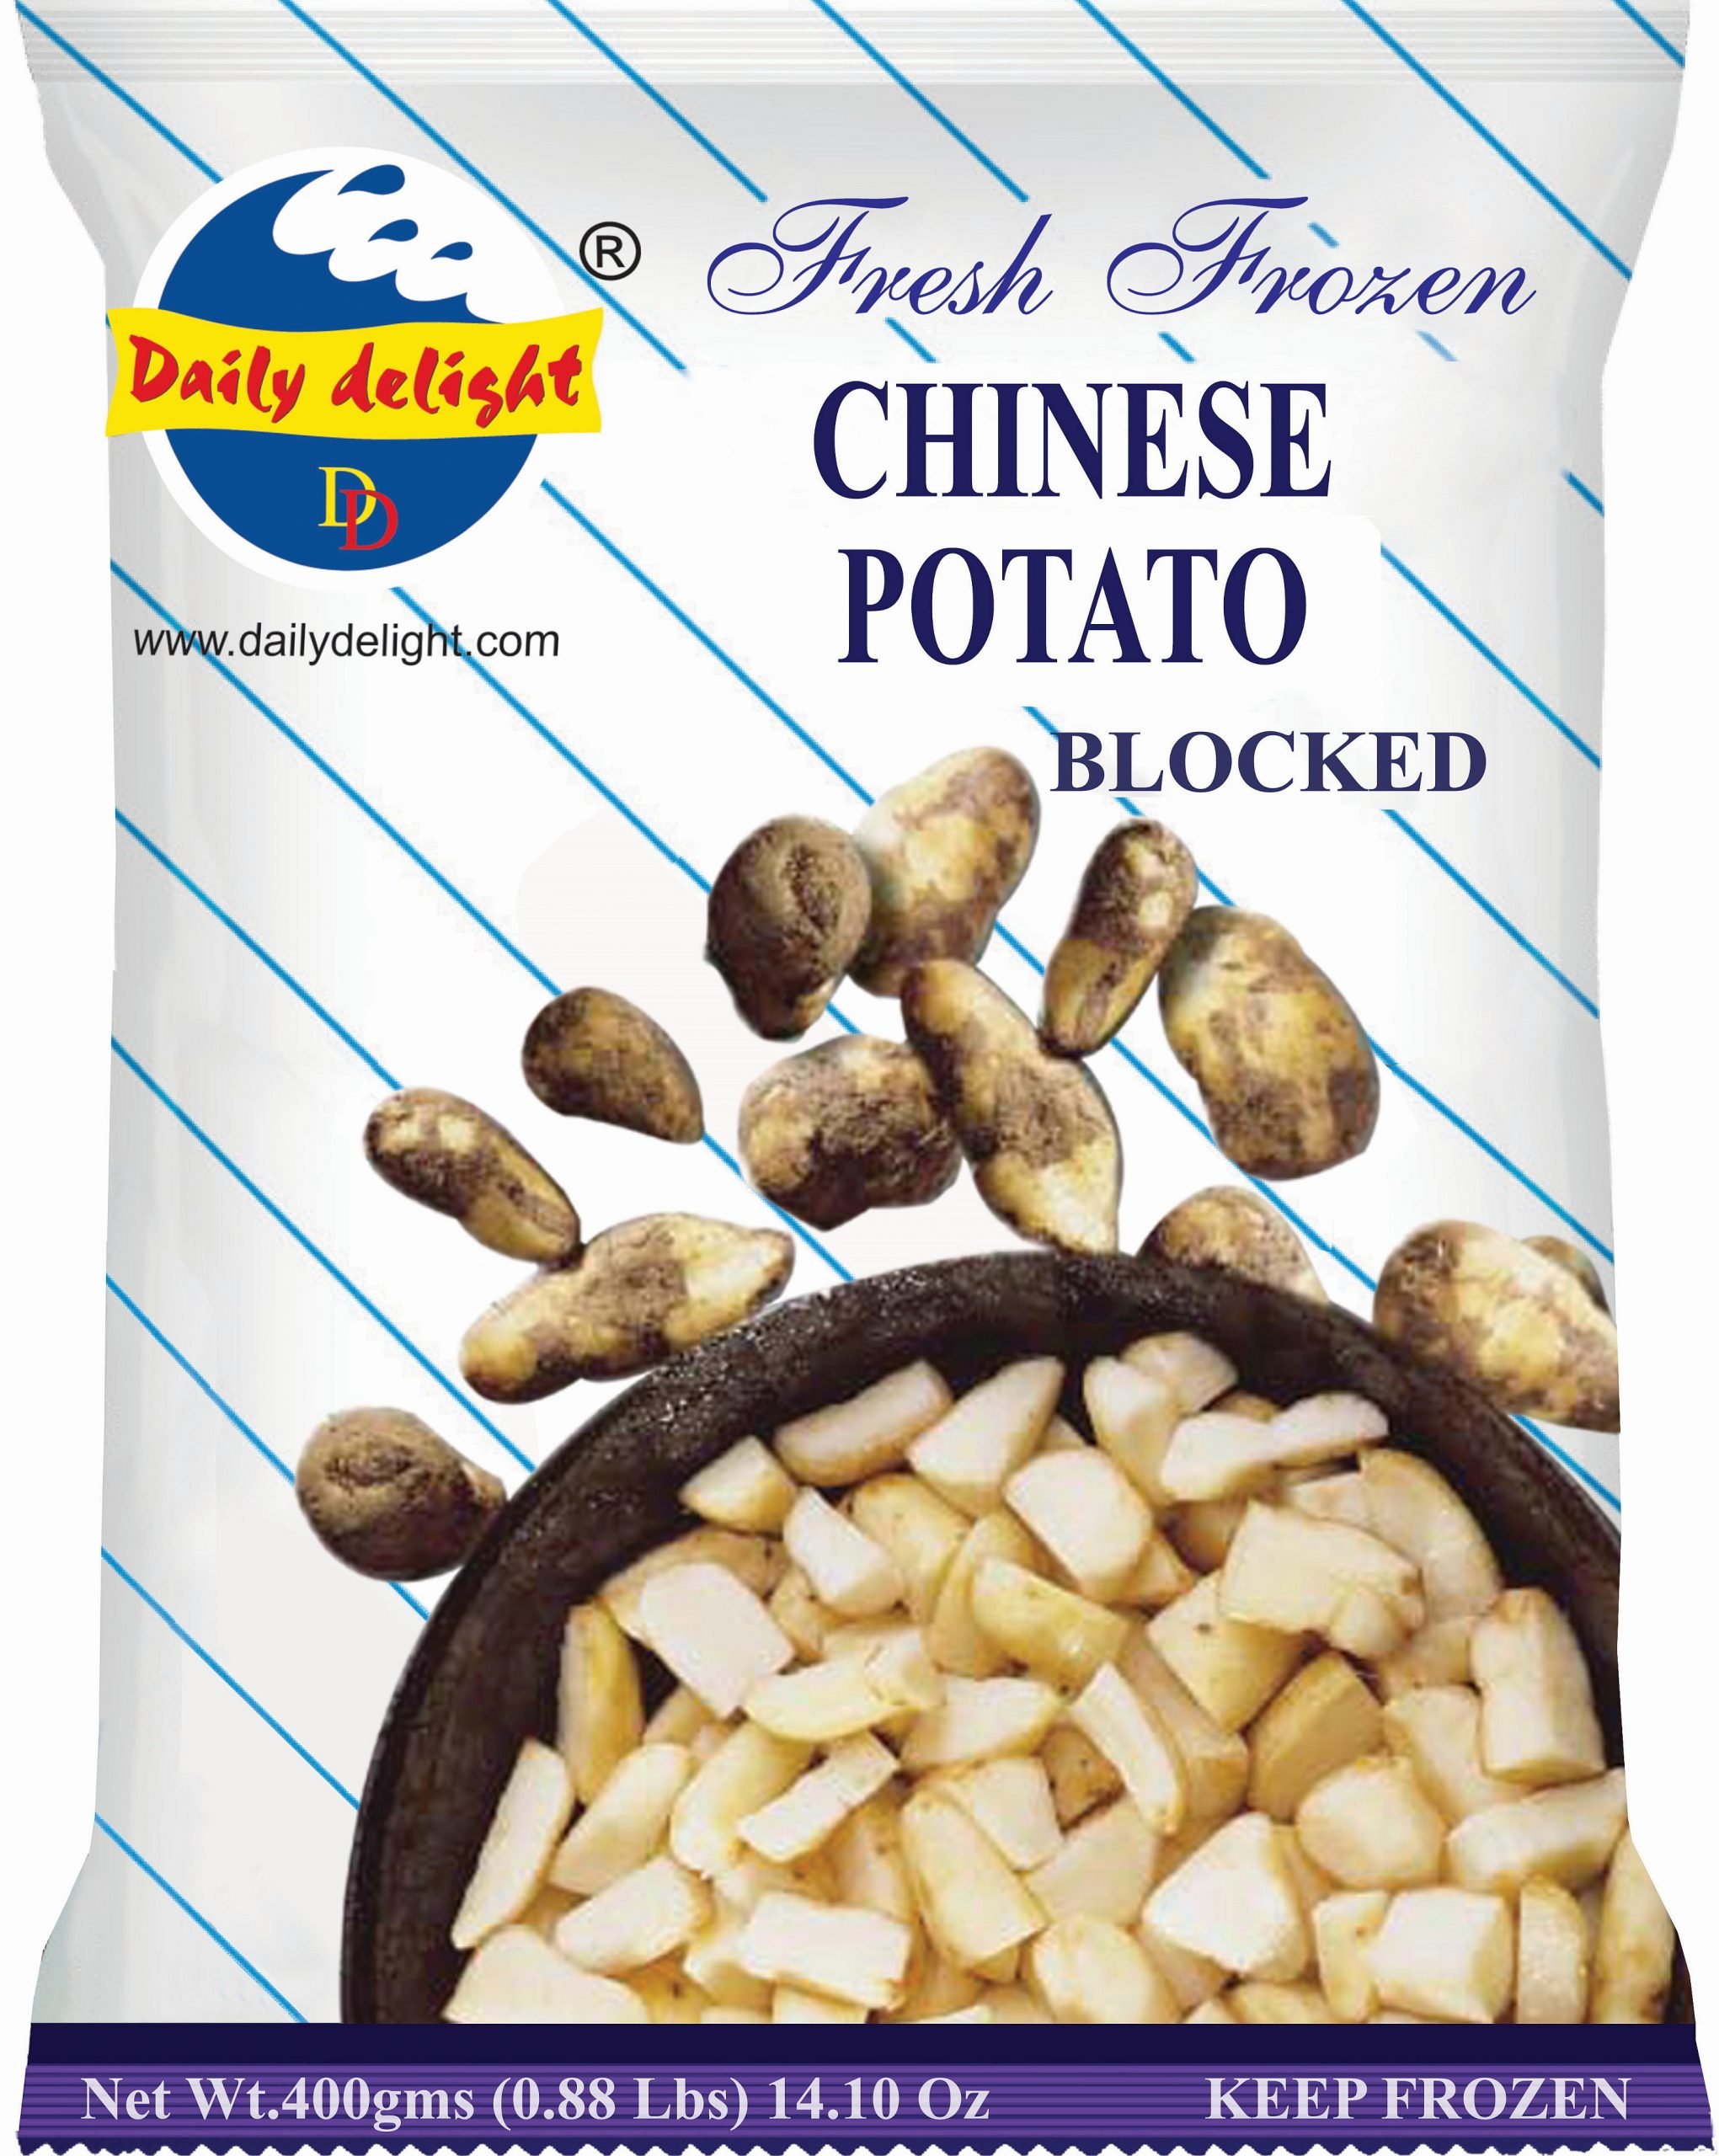 Daily Delight Chinese Potato Blocked